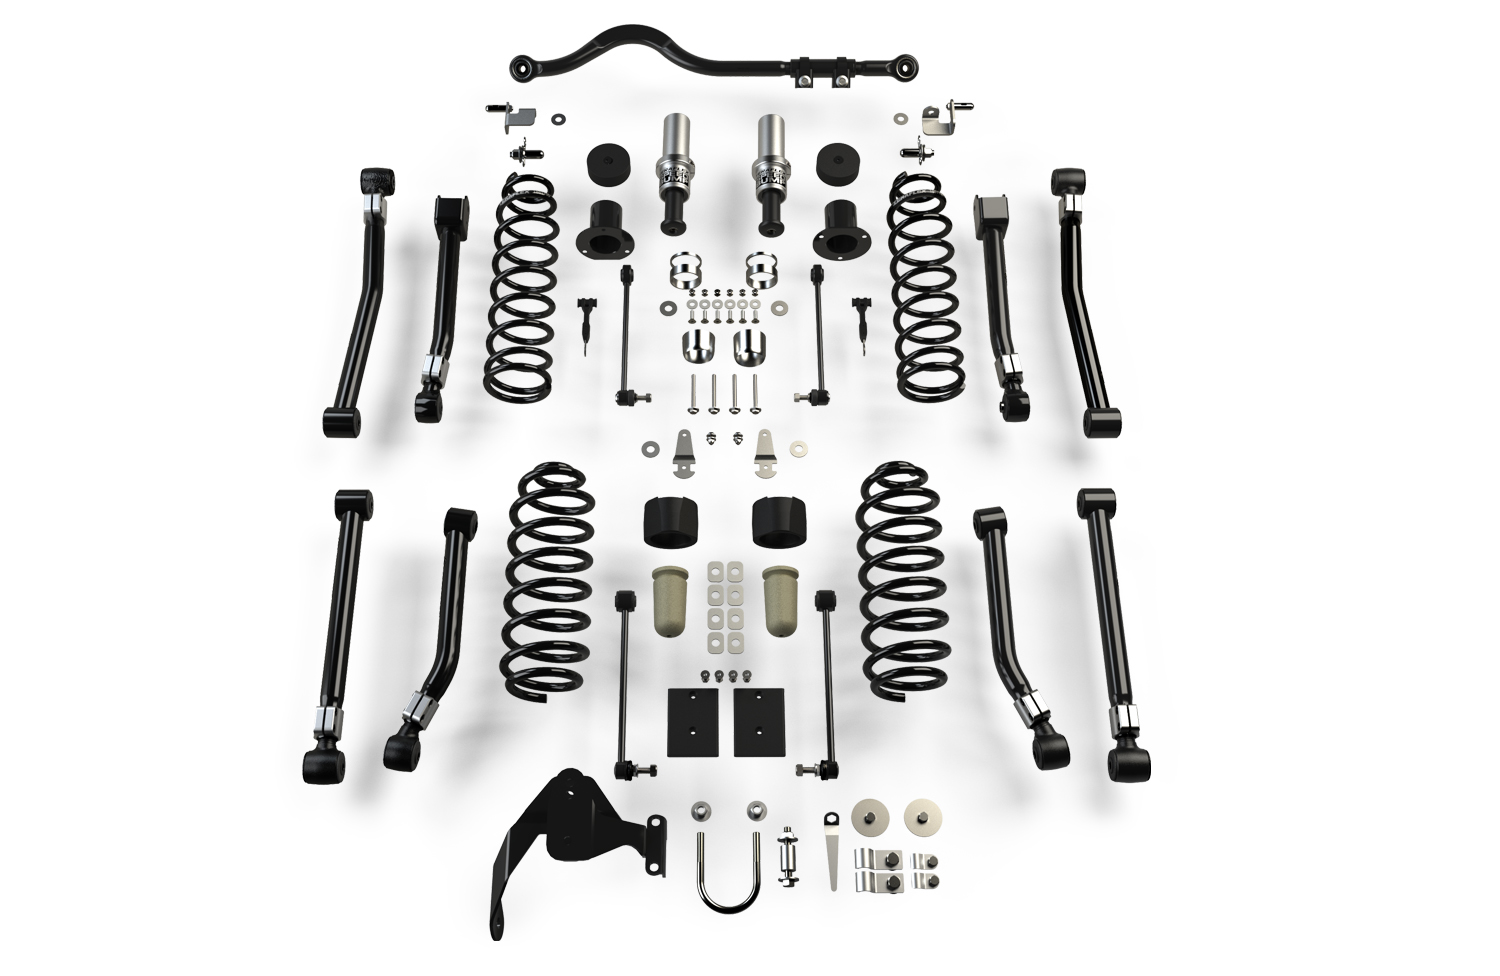 "Outback suspension comprises of: - The TeraFlex JK/JKU 8-Arm Adjustable Alpine Flexarm Kit (2-4"" Lift)3"" OutBack lift load-enhanced heavy-duty rate coil springsHD forged adjustable front track barSpeed Bump bump stopsFront brake line anchor kitFront sway bar disconnectsRear track bar bracketRear sway bar linksHD limit strapsCoil spring retainersExhaust spacersAdditional gusseting & reinforced bracketryAll necessary hardwareAnd Stickers!!!"